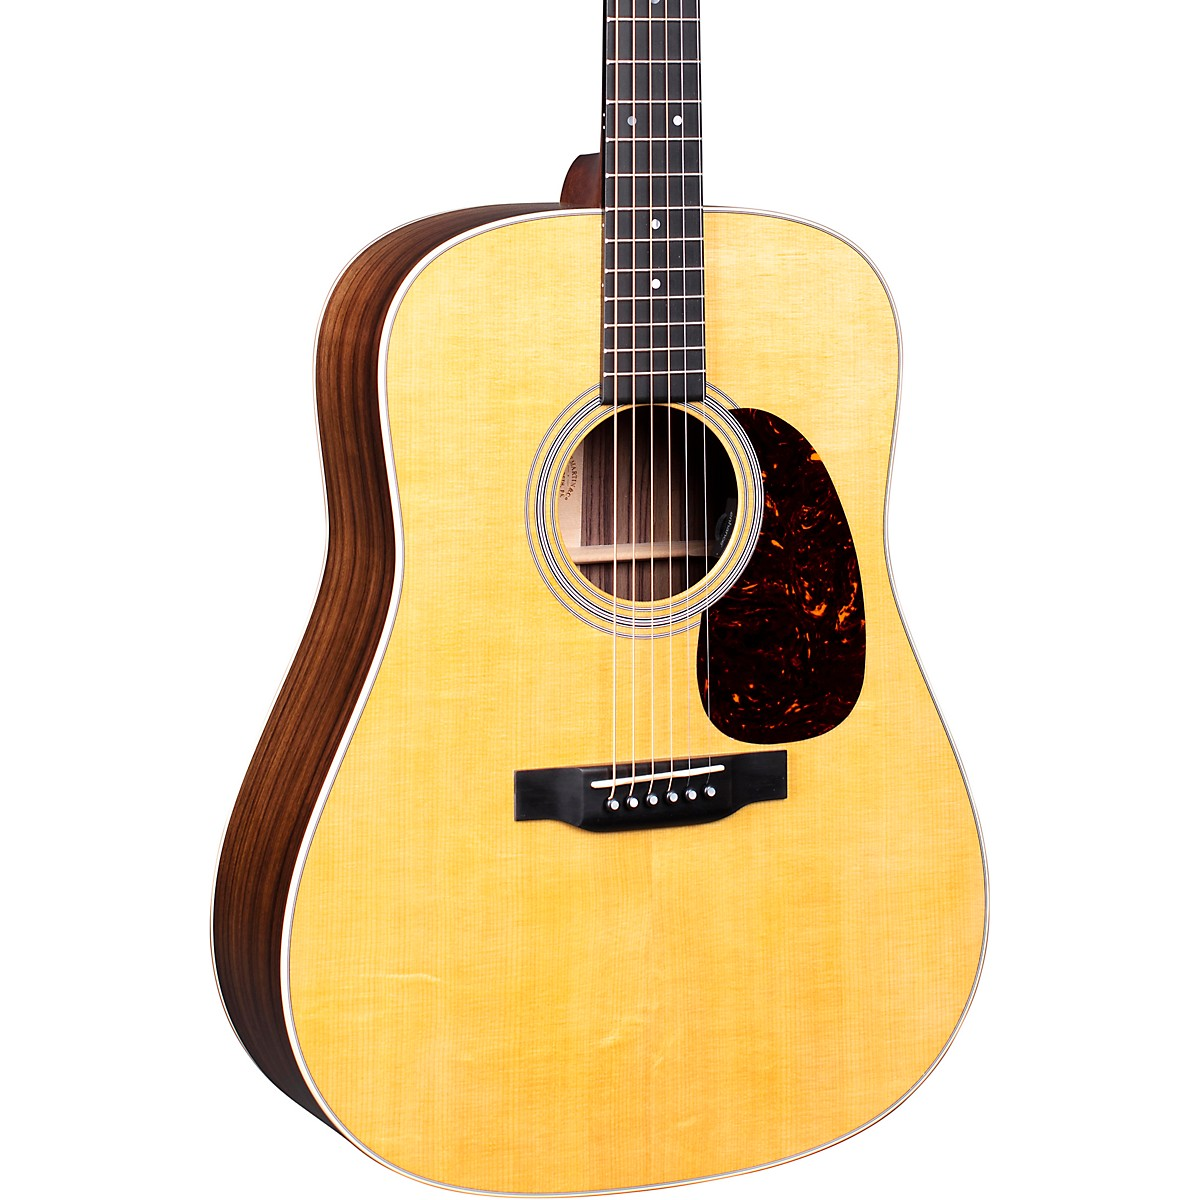 Martin Special 16 Style Rosewood Dreadnought Acoustic-Electric Guitar